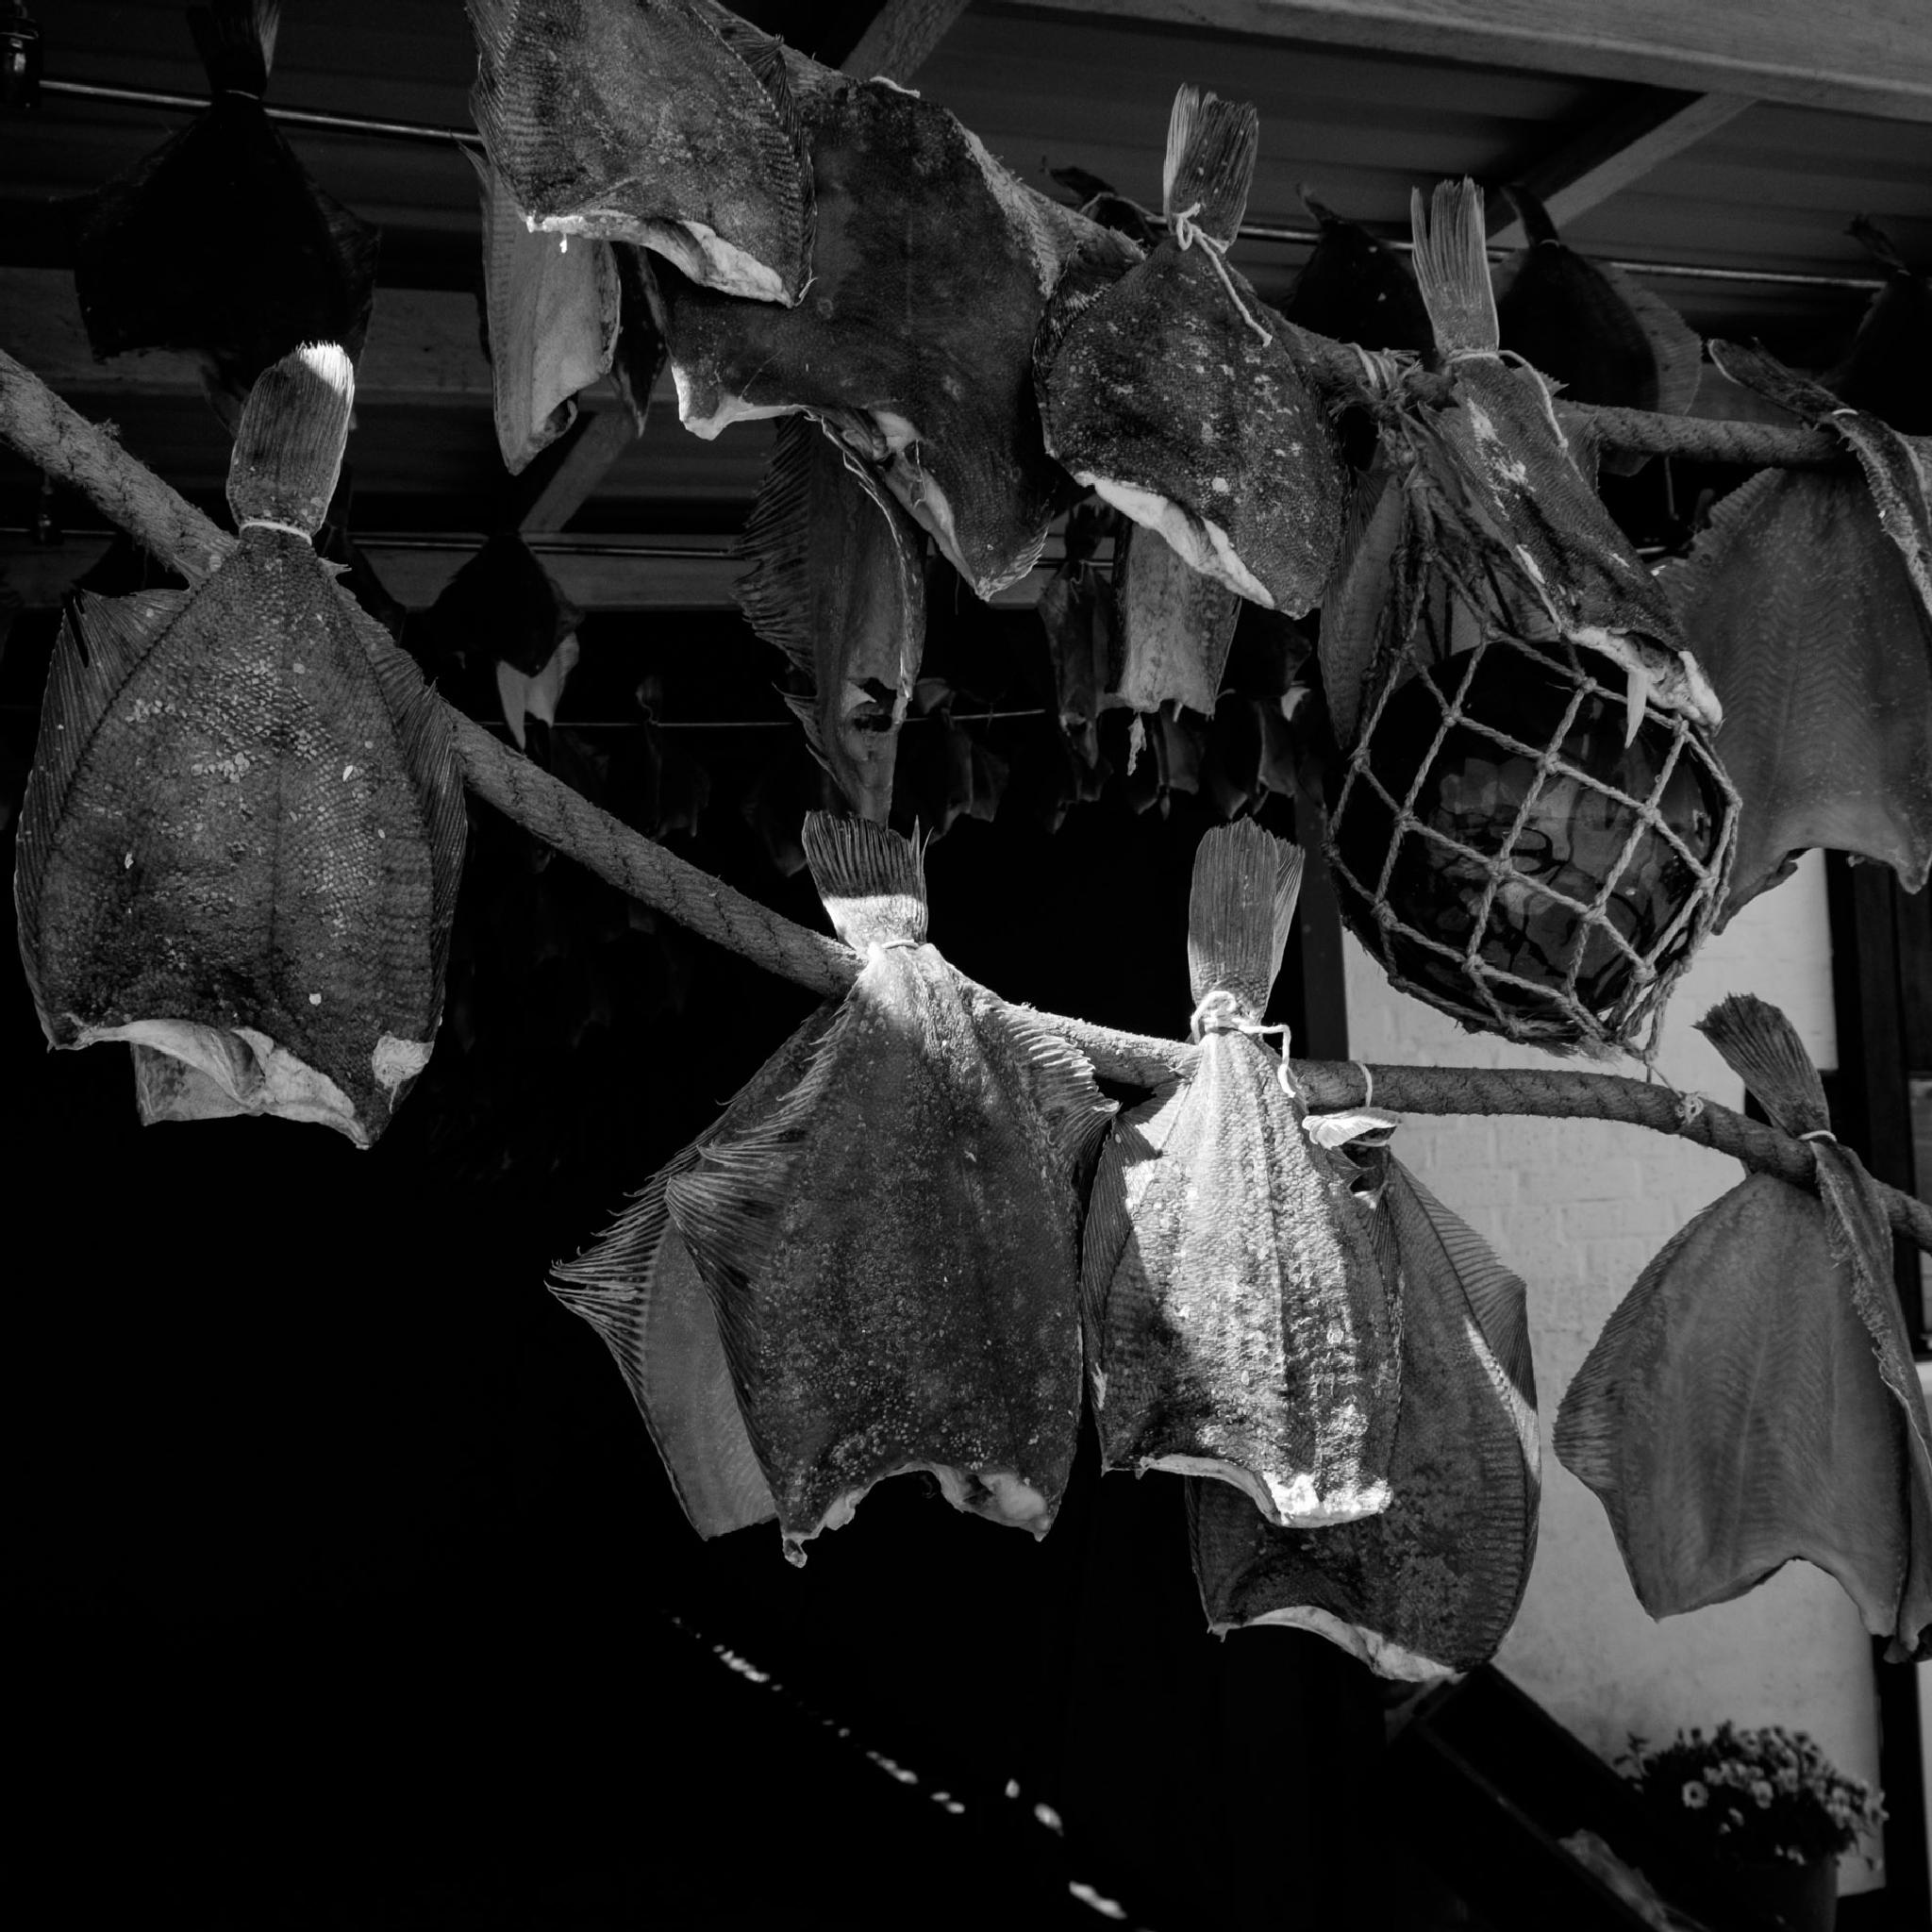 Dried fish by Dorit Bach